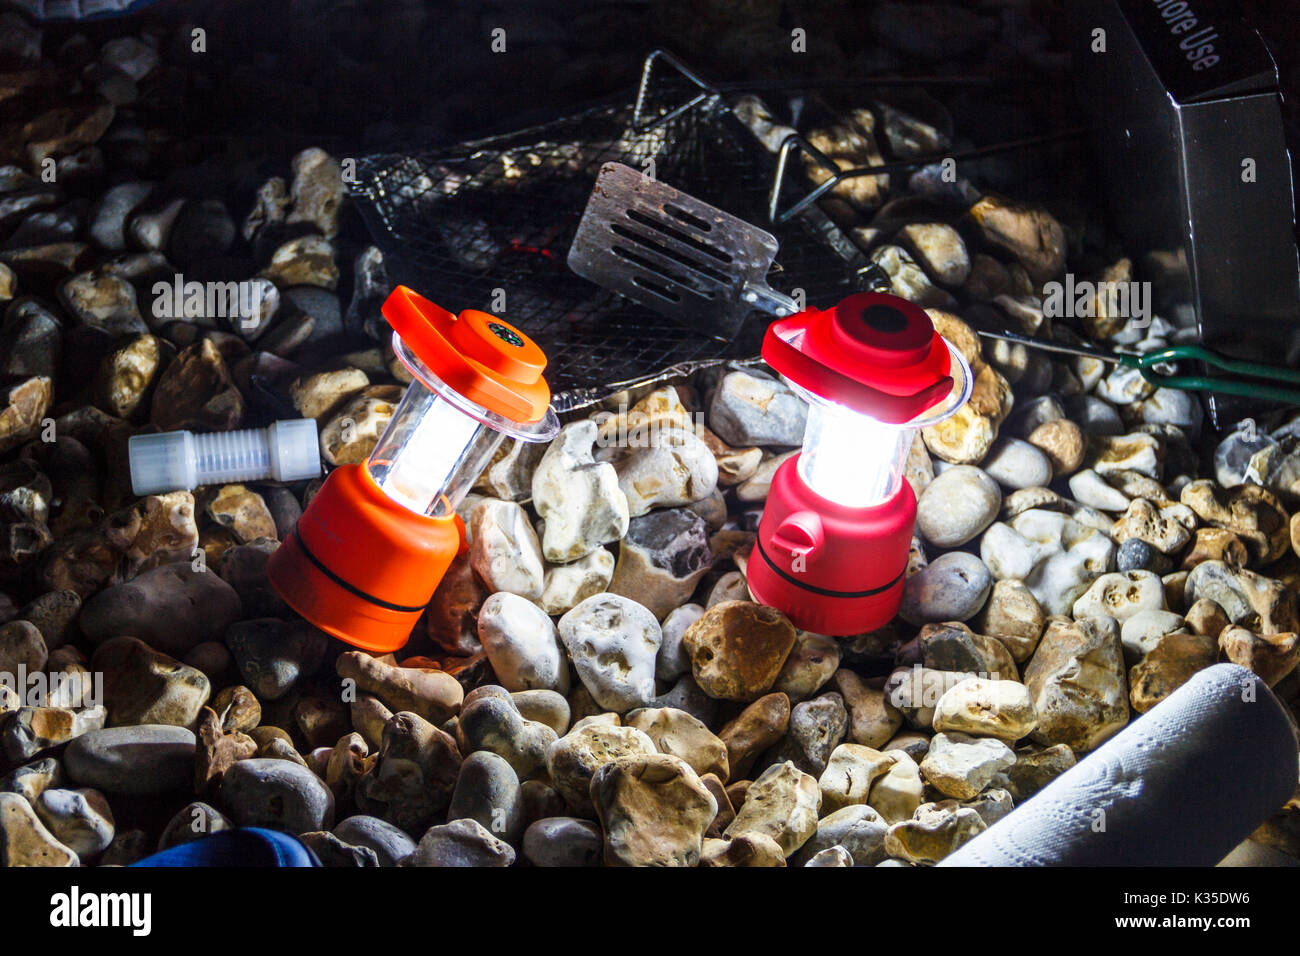 Close-up of two red camping lanterns illuminating a stony beach at night, after a barbecue - Stock Image